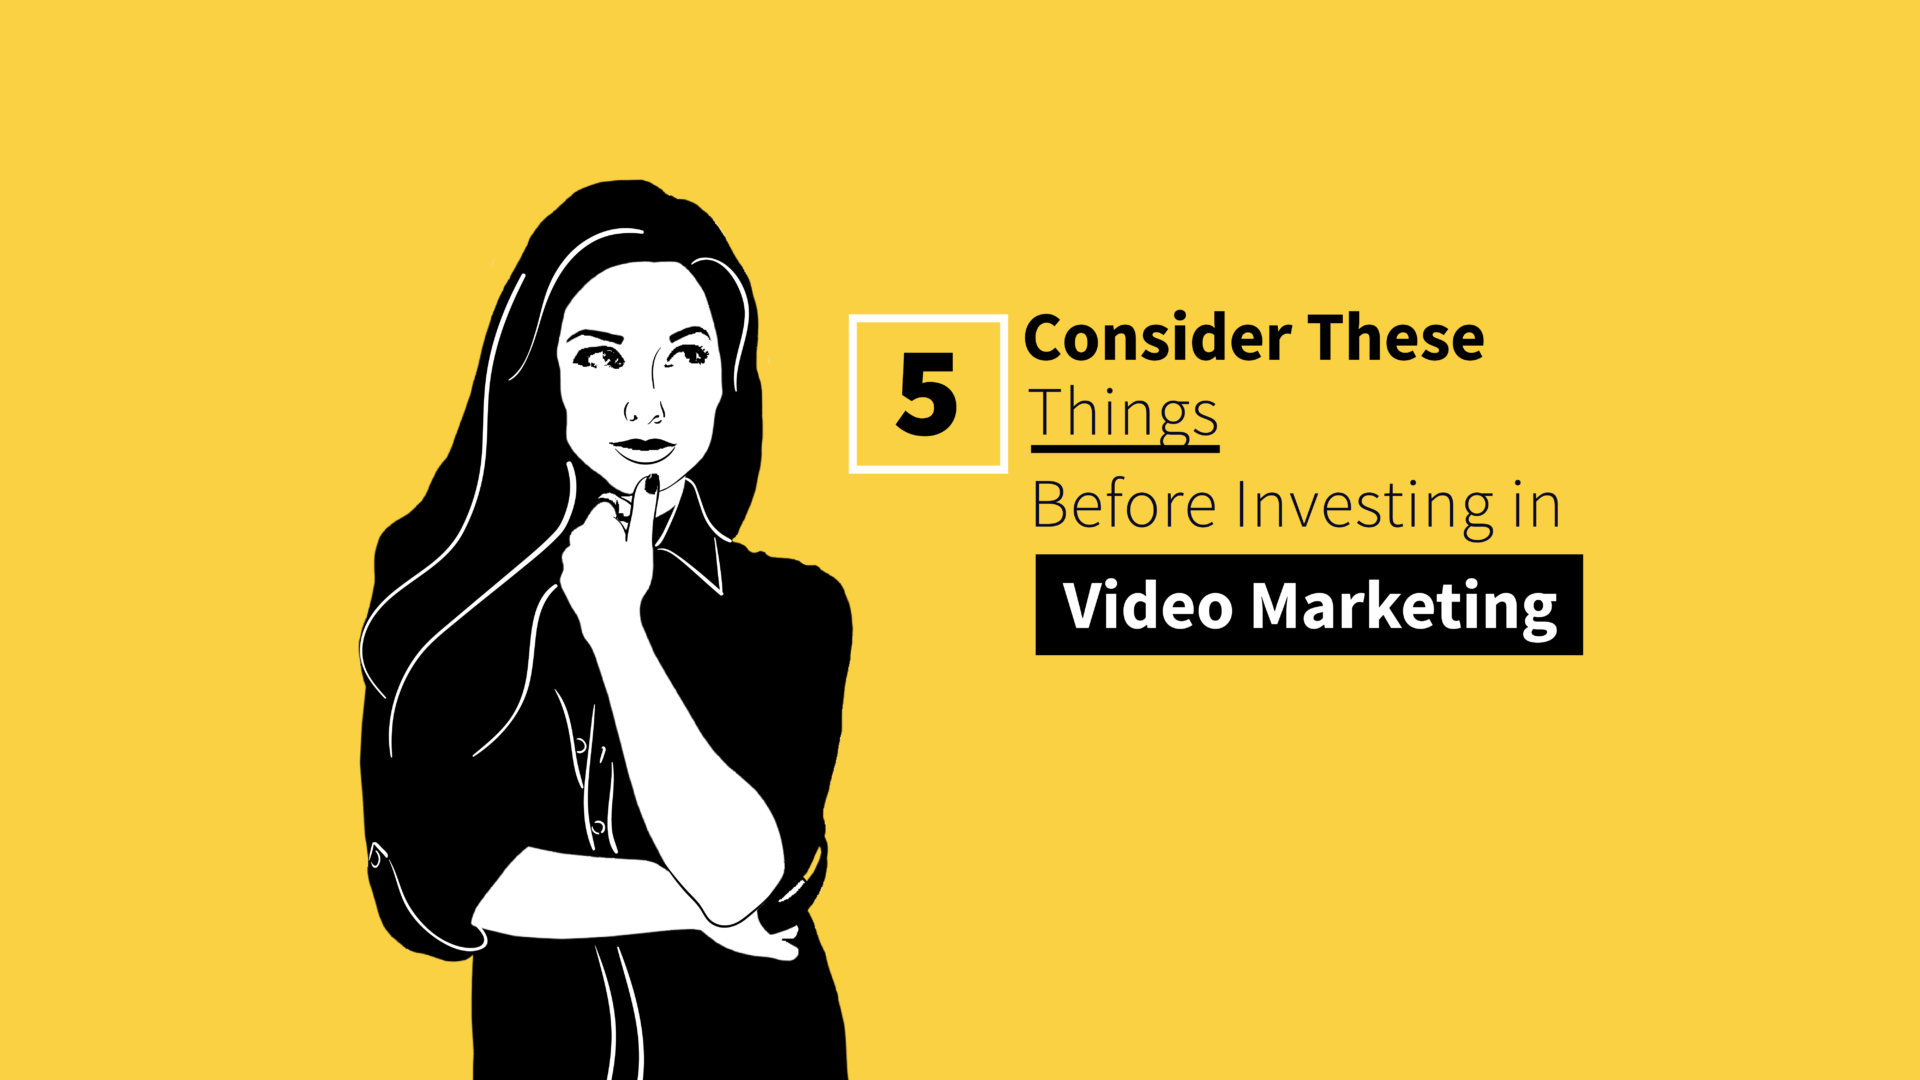 5 Things to Consider Before Investing in Video Marketing